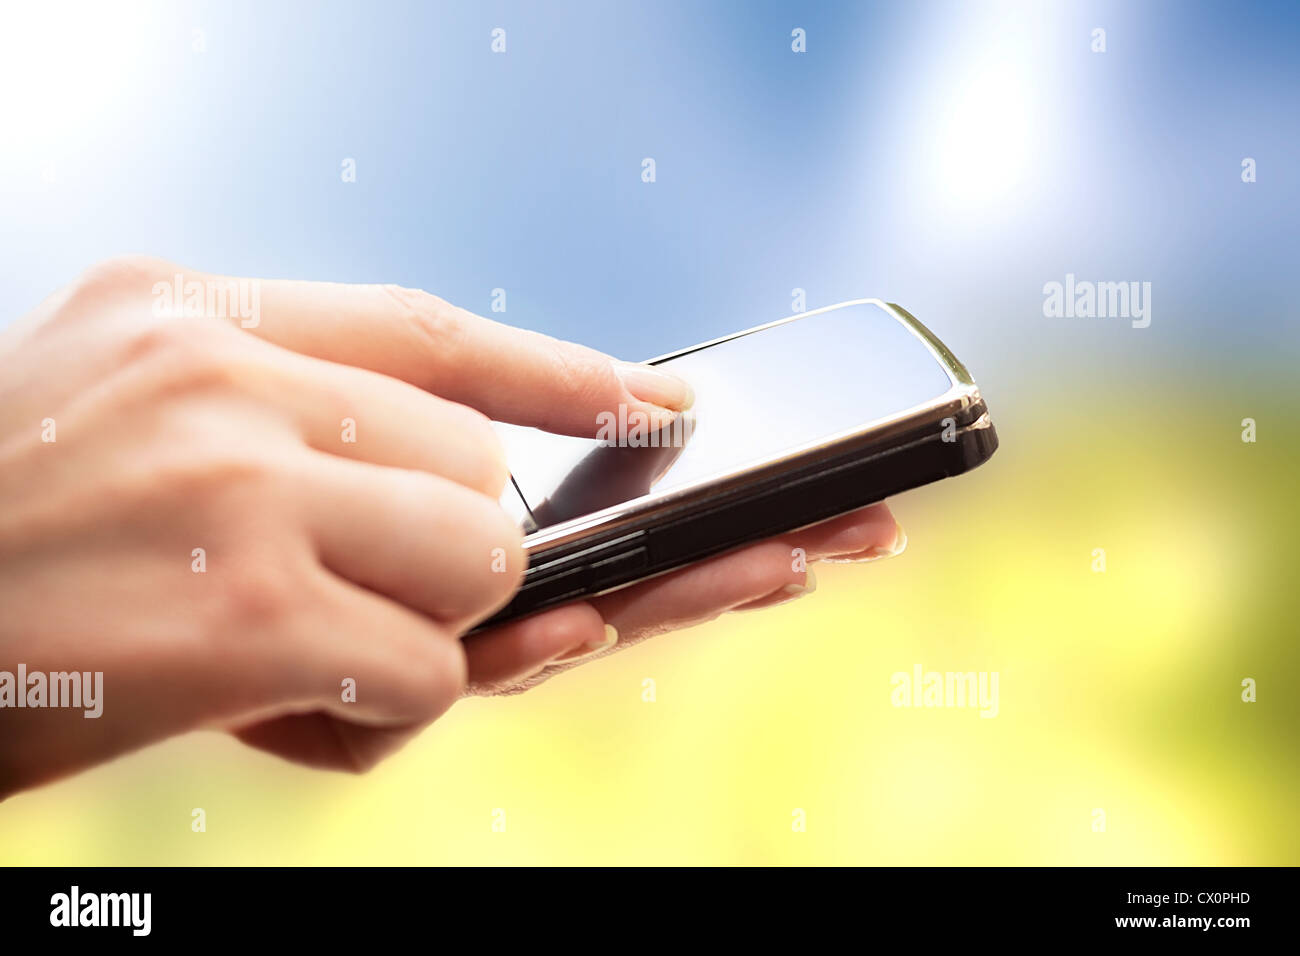 Closeup of female hands using a smart phone. Nature background. - Stock Image